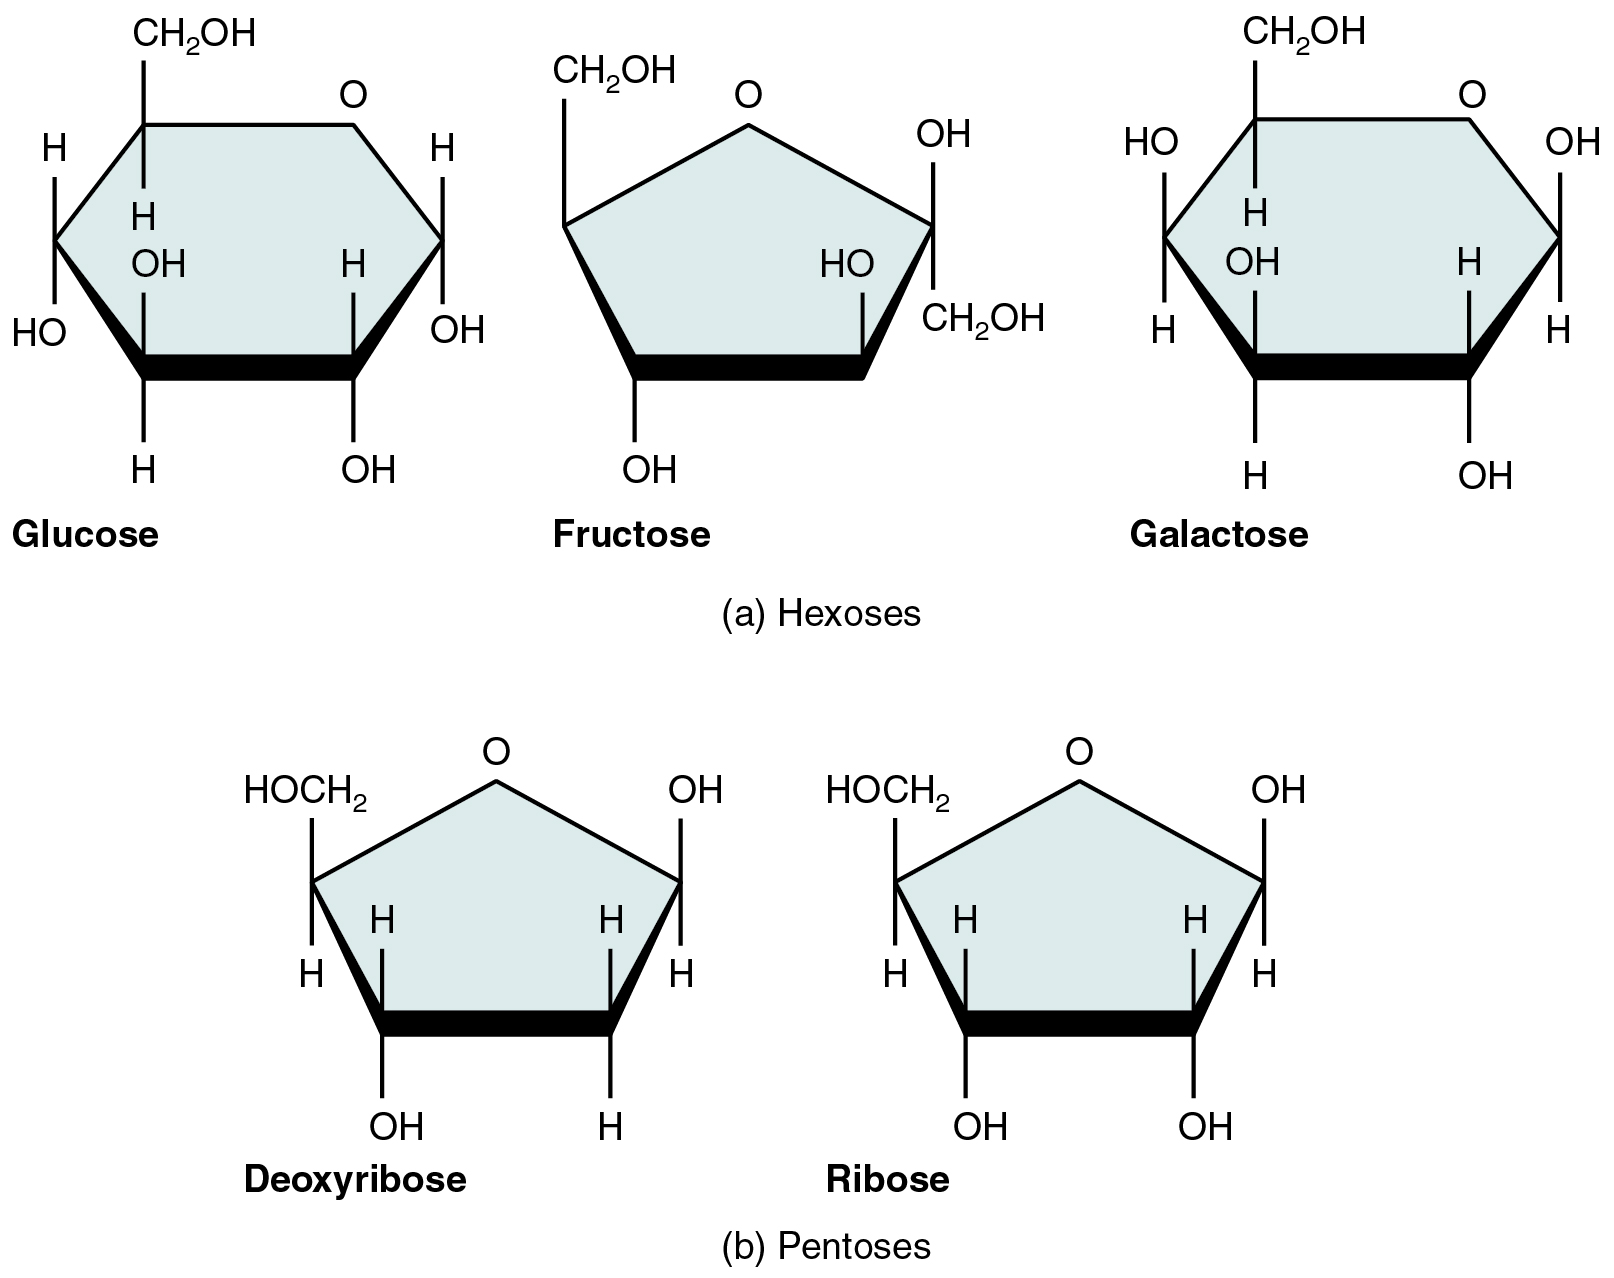 Galactose Structure Diagram the structure of glucose